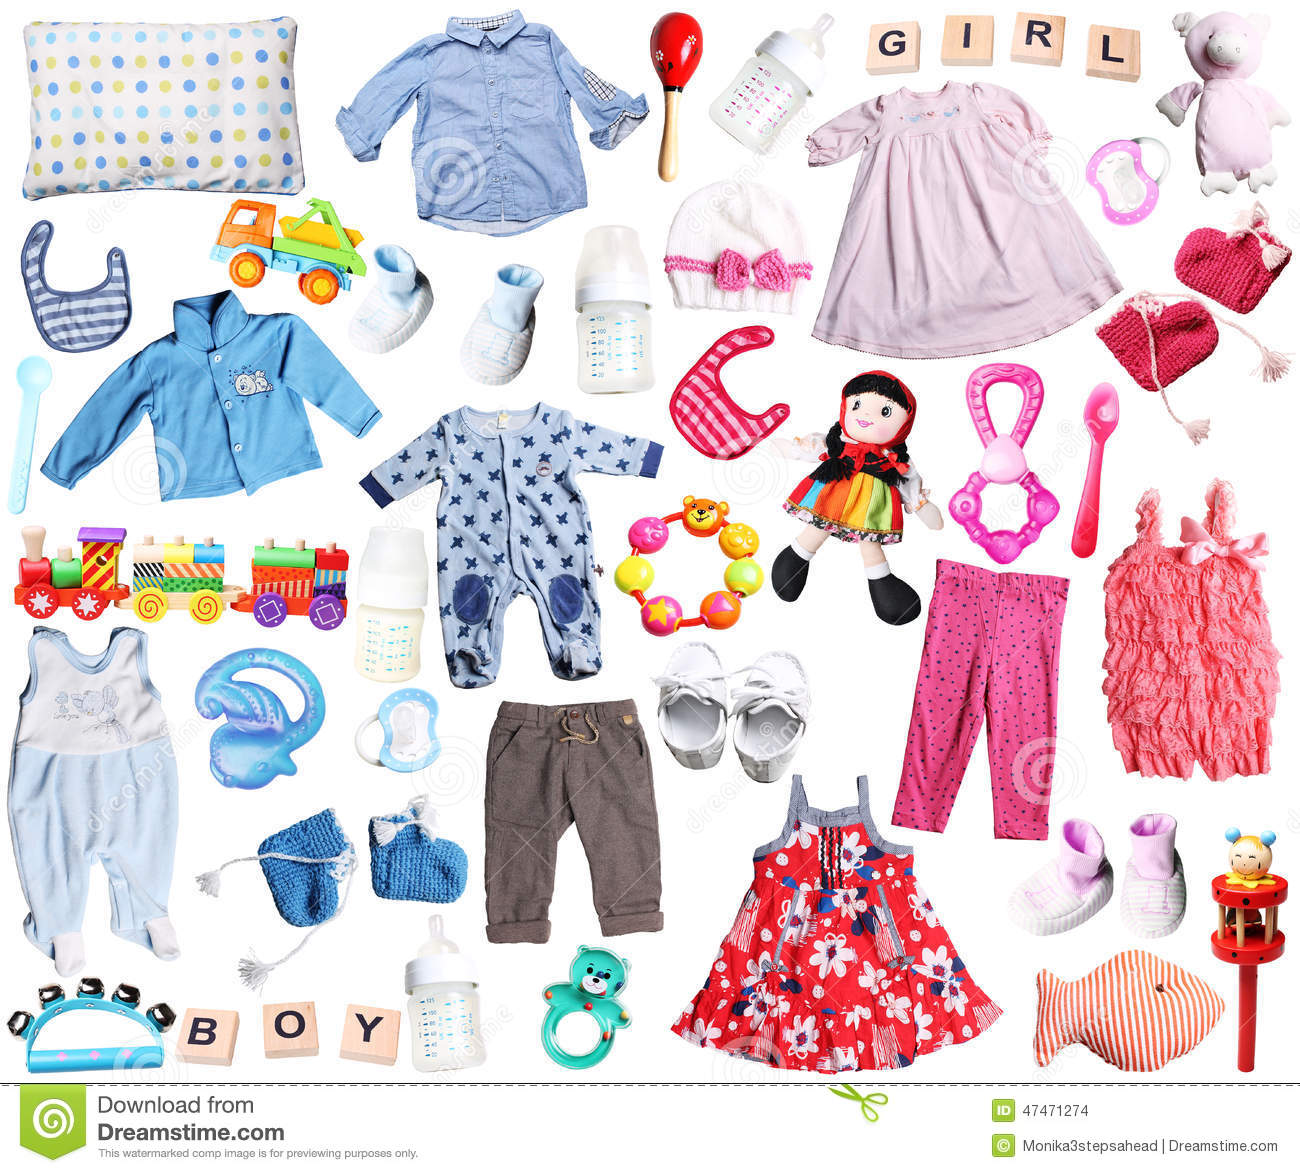 A large selection of discount baby clothes makes JCPenney the best place to shop for all your baby clothes at really affordable prices. We have all kinds of clearance baby clothes, including boy clothes, girl clothes, baby girl dresses and baby boy dress clothes.